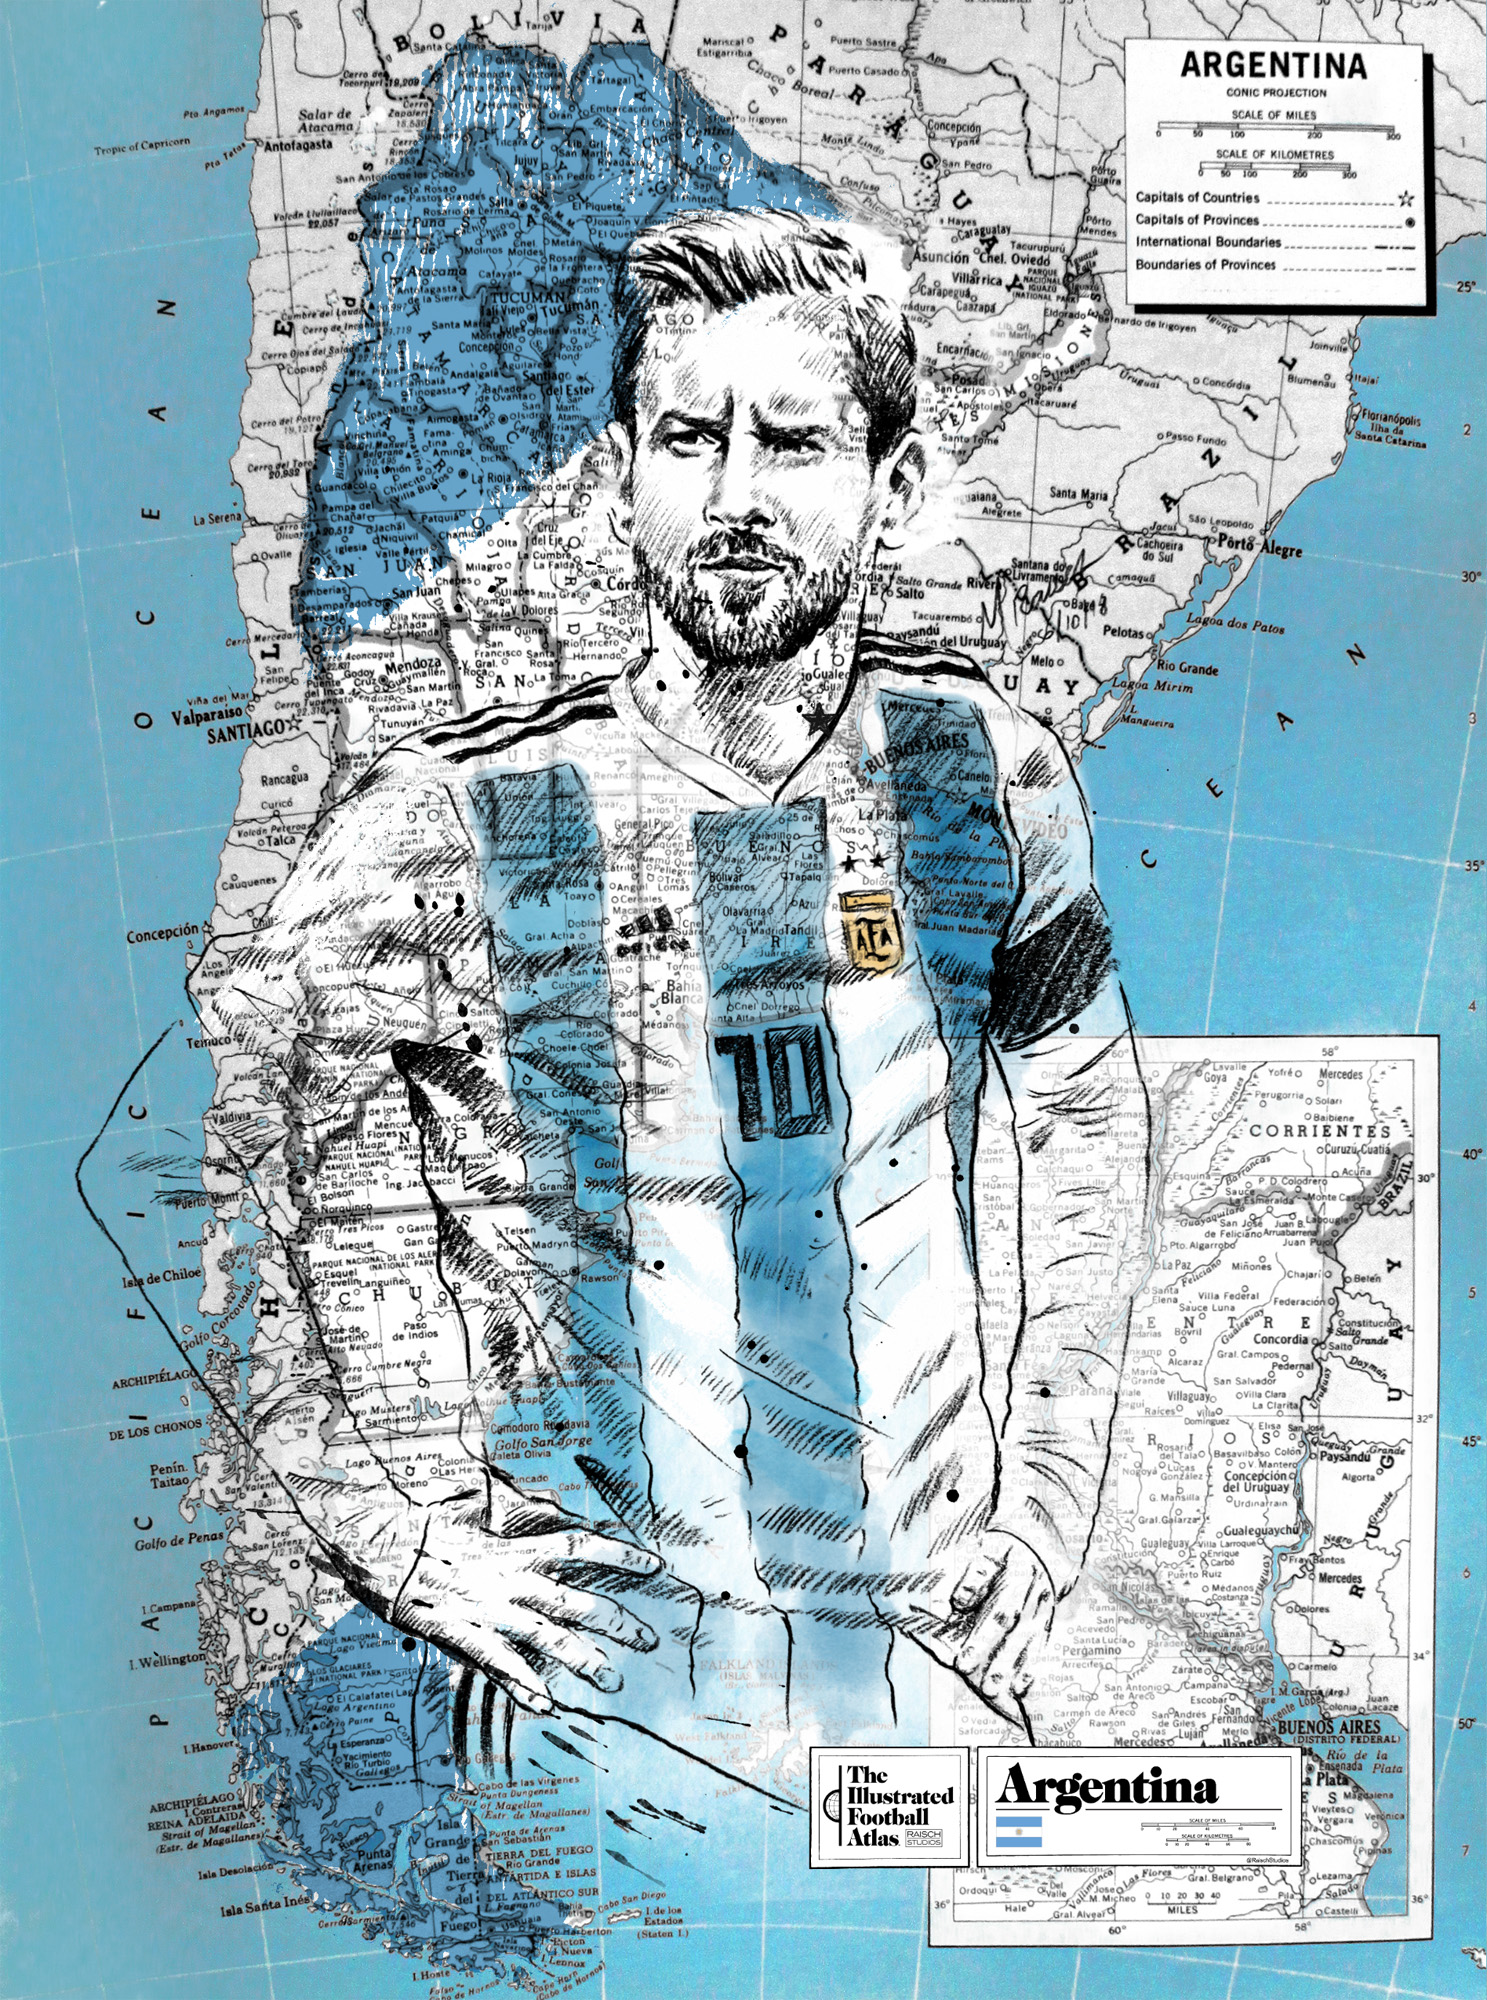 Argentina_the_Football_Atlas_WorldCup2018-Raisch.jpg